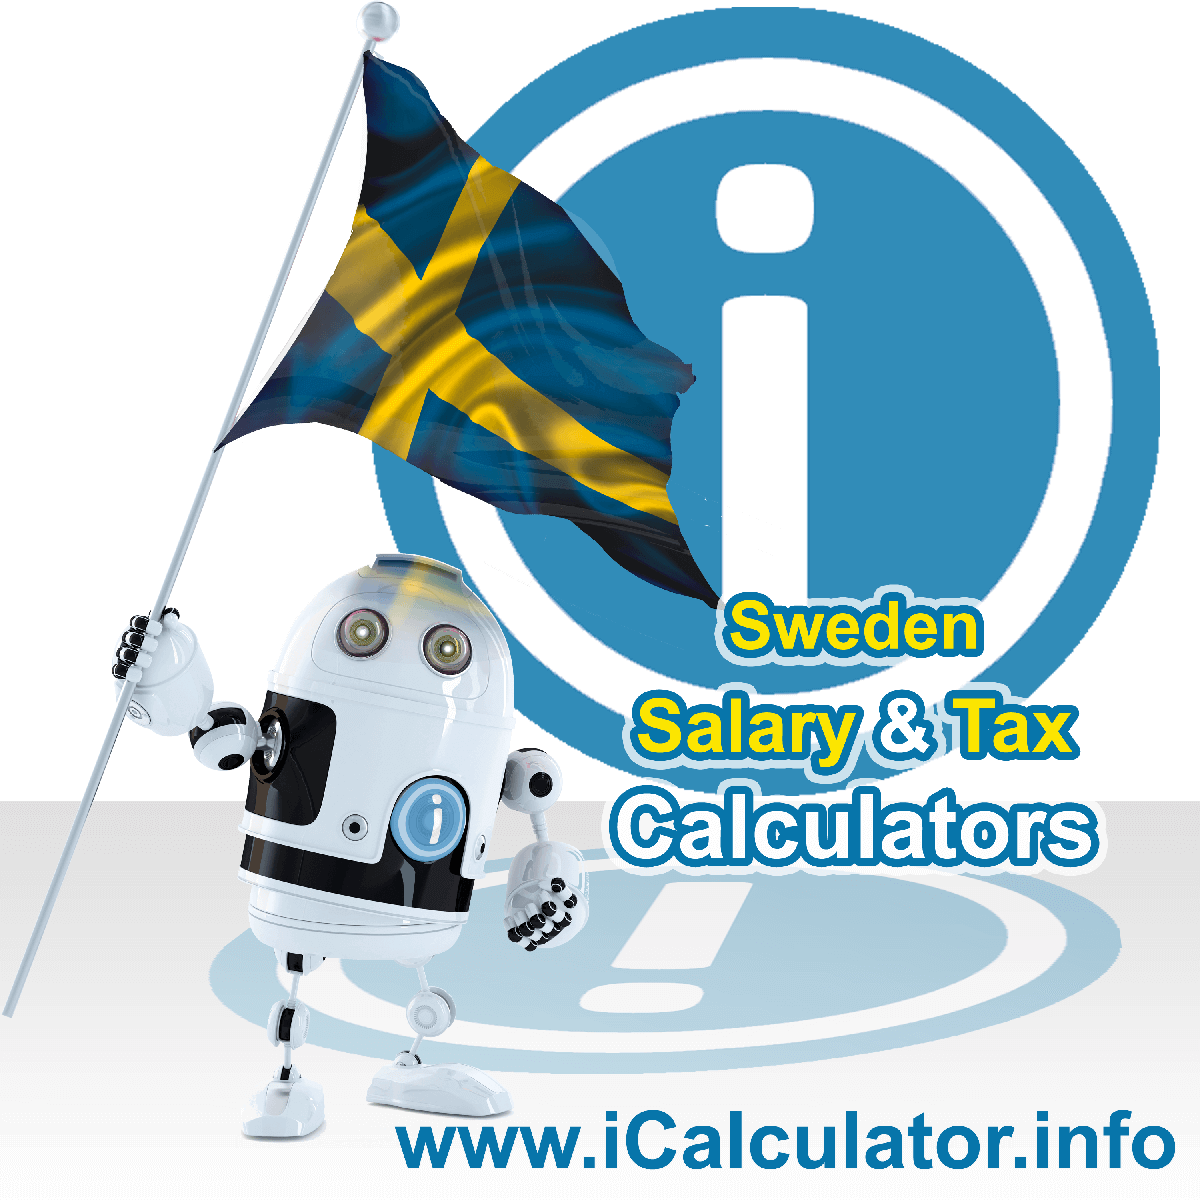 Sweden Wage Calculator. This image shows the Sweden flag and information relating to the tax formula for the Sweden Tax Calculator